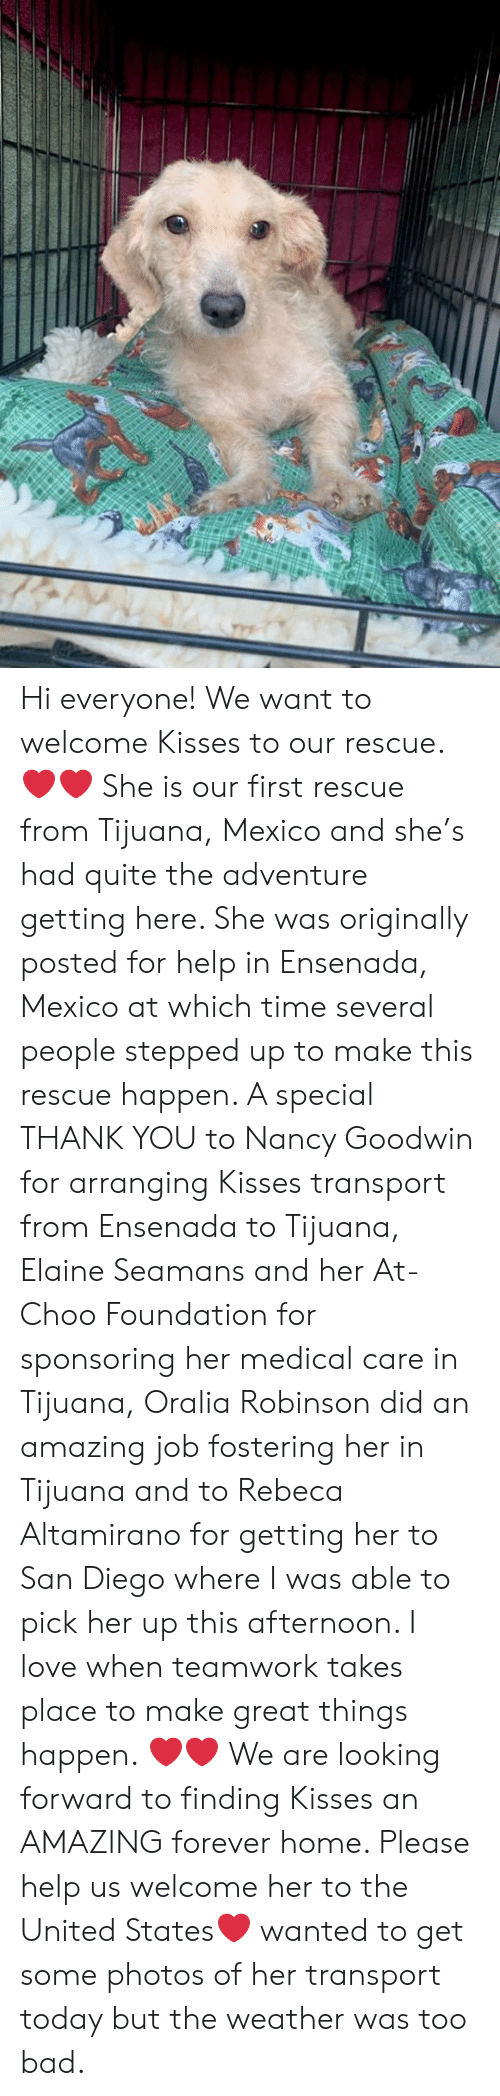 Bad, Love, and Memes: Hi everyone! We want to welcome Kisses to our rescue. ❤️❤️ She is our first rescue from Tijuana, Mexico and she's had quite the adventure getting here. She was originally posted for help in Ensenada, Mexico at which time several people stepped up to make this rescue happen. A special THANK YOU to Nancy Goodwin for arranging Kisses transport from Ensenada to Tijuana, Elaine Seamans and her At-Choo Foundation for sponsoring her medical care in Tijuana, Oralia Robinson did an amazing job fostering her in Tijuana and to Rebeca Altamirano for getting her to San Diego where I was able to pick her up this afternoon. I love when teamwork takes place to make great things happen. ❤️❤️  We are looking forward to finding Kisses an AMAZING forever home. Please help us welcome her to the United States❤️   wanted to get some photos of her transport today but the weather was too bad.